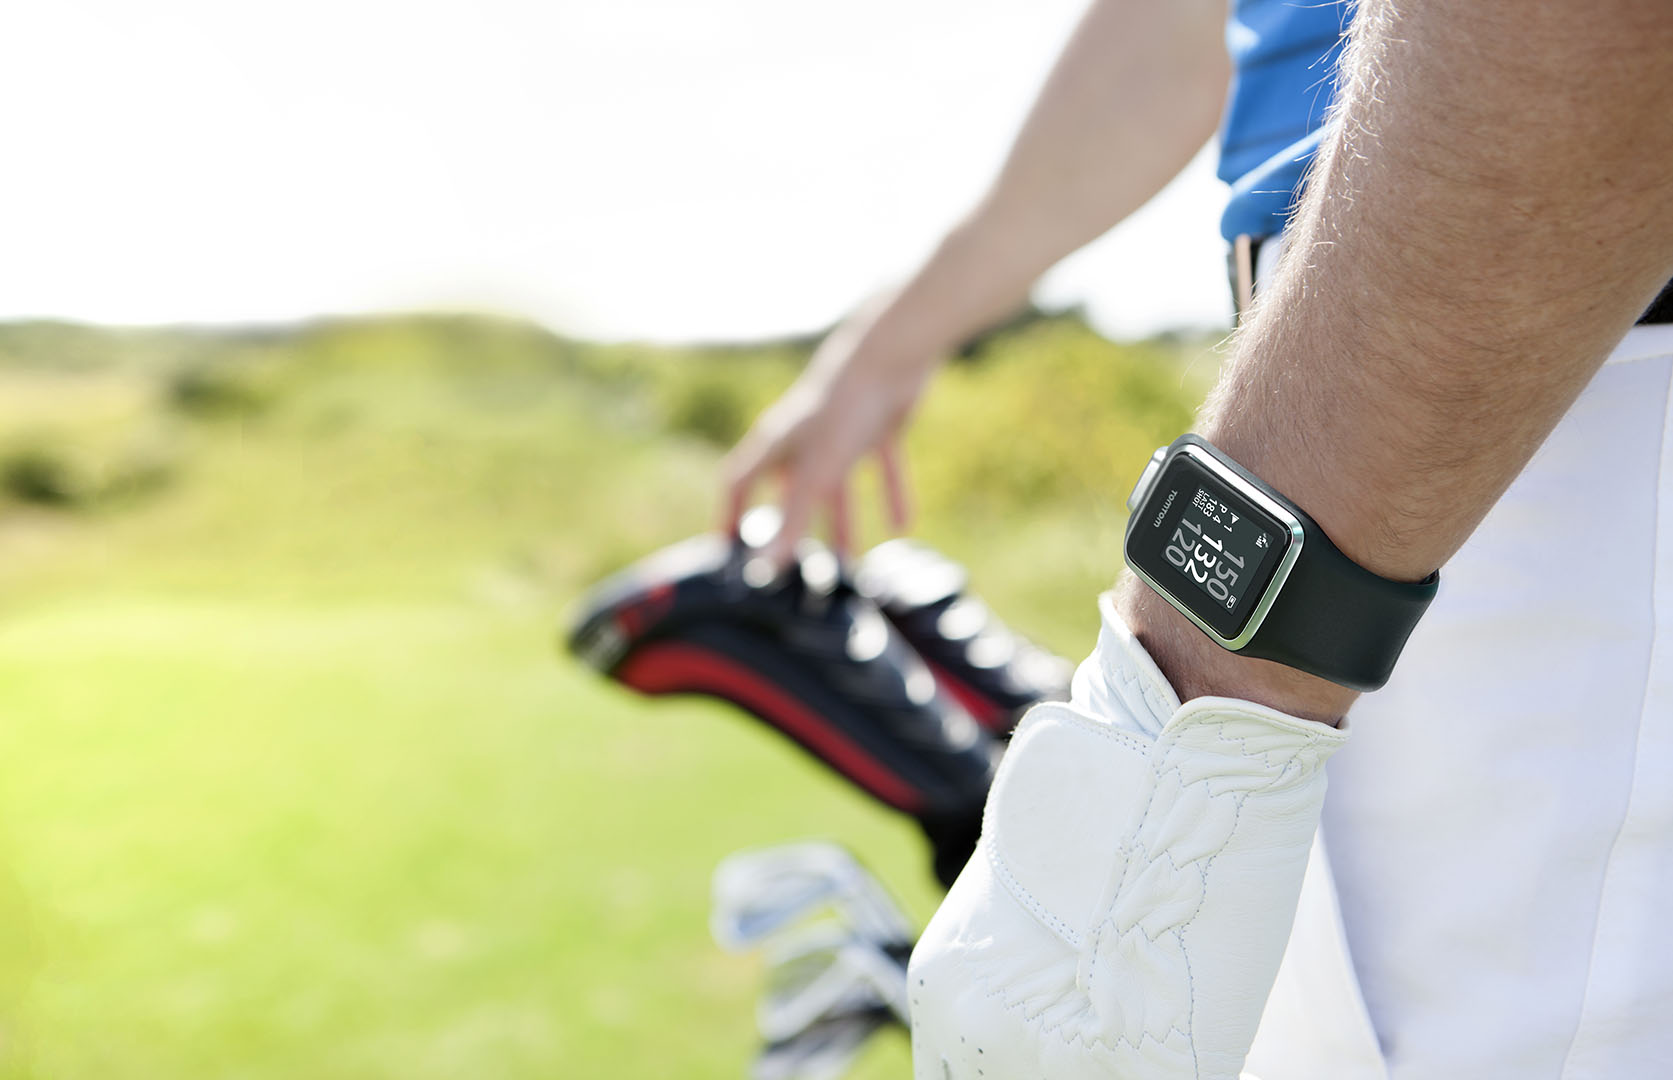 Test de la montre de Golf TOMTOM Golfer 2